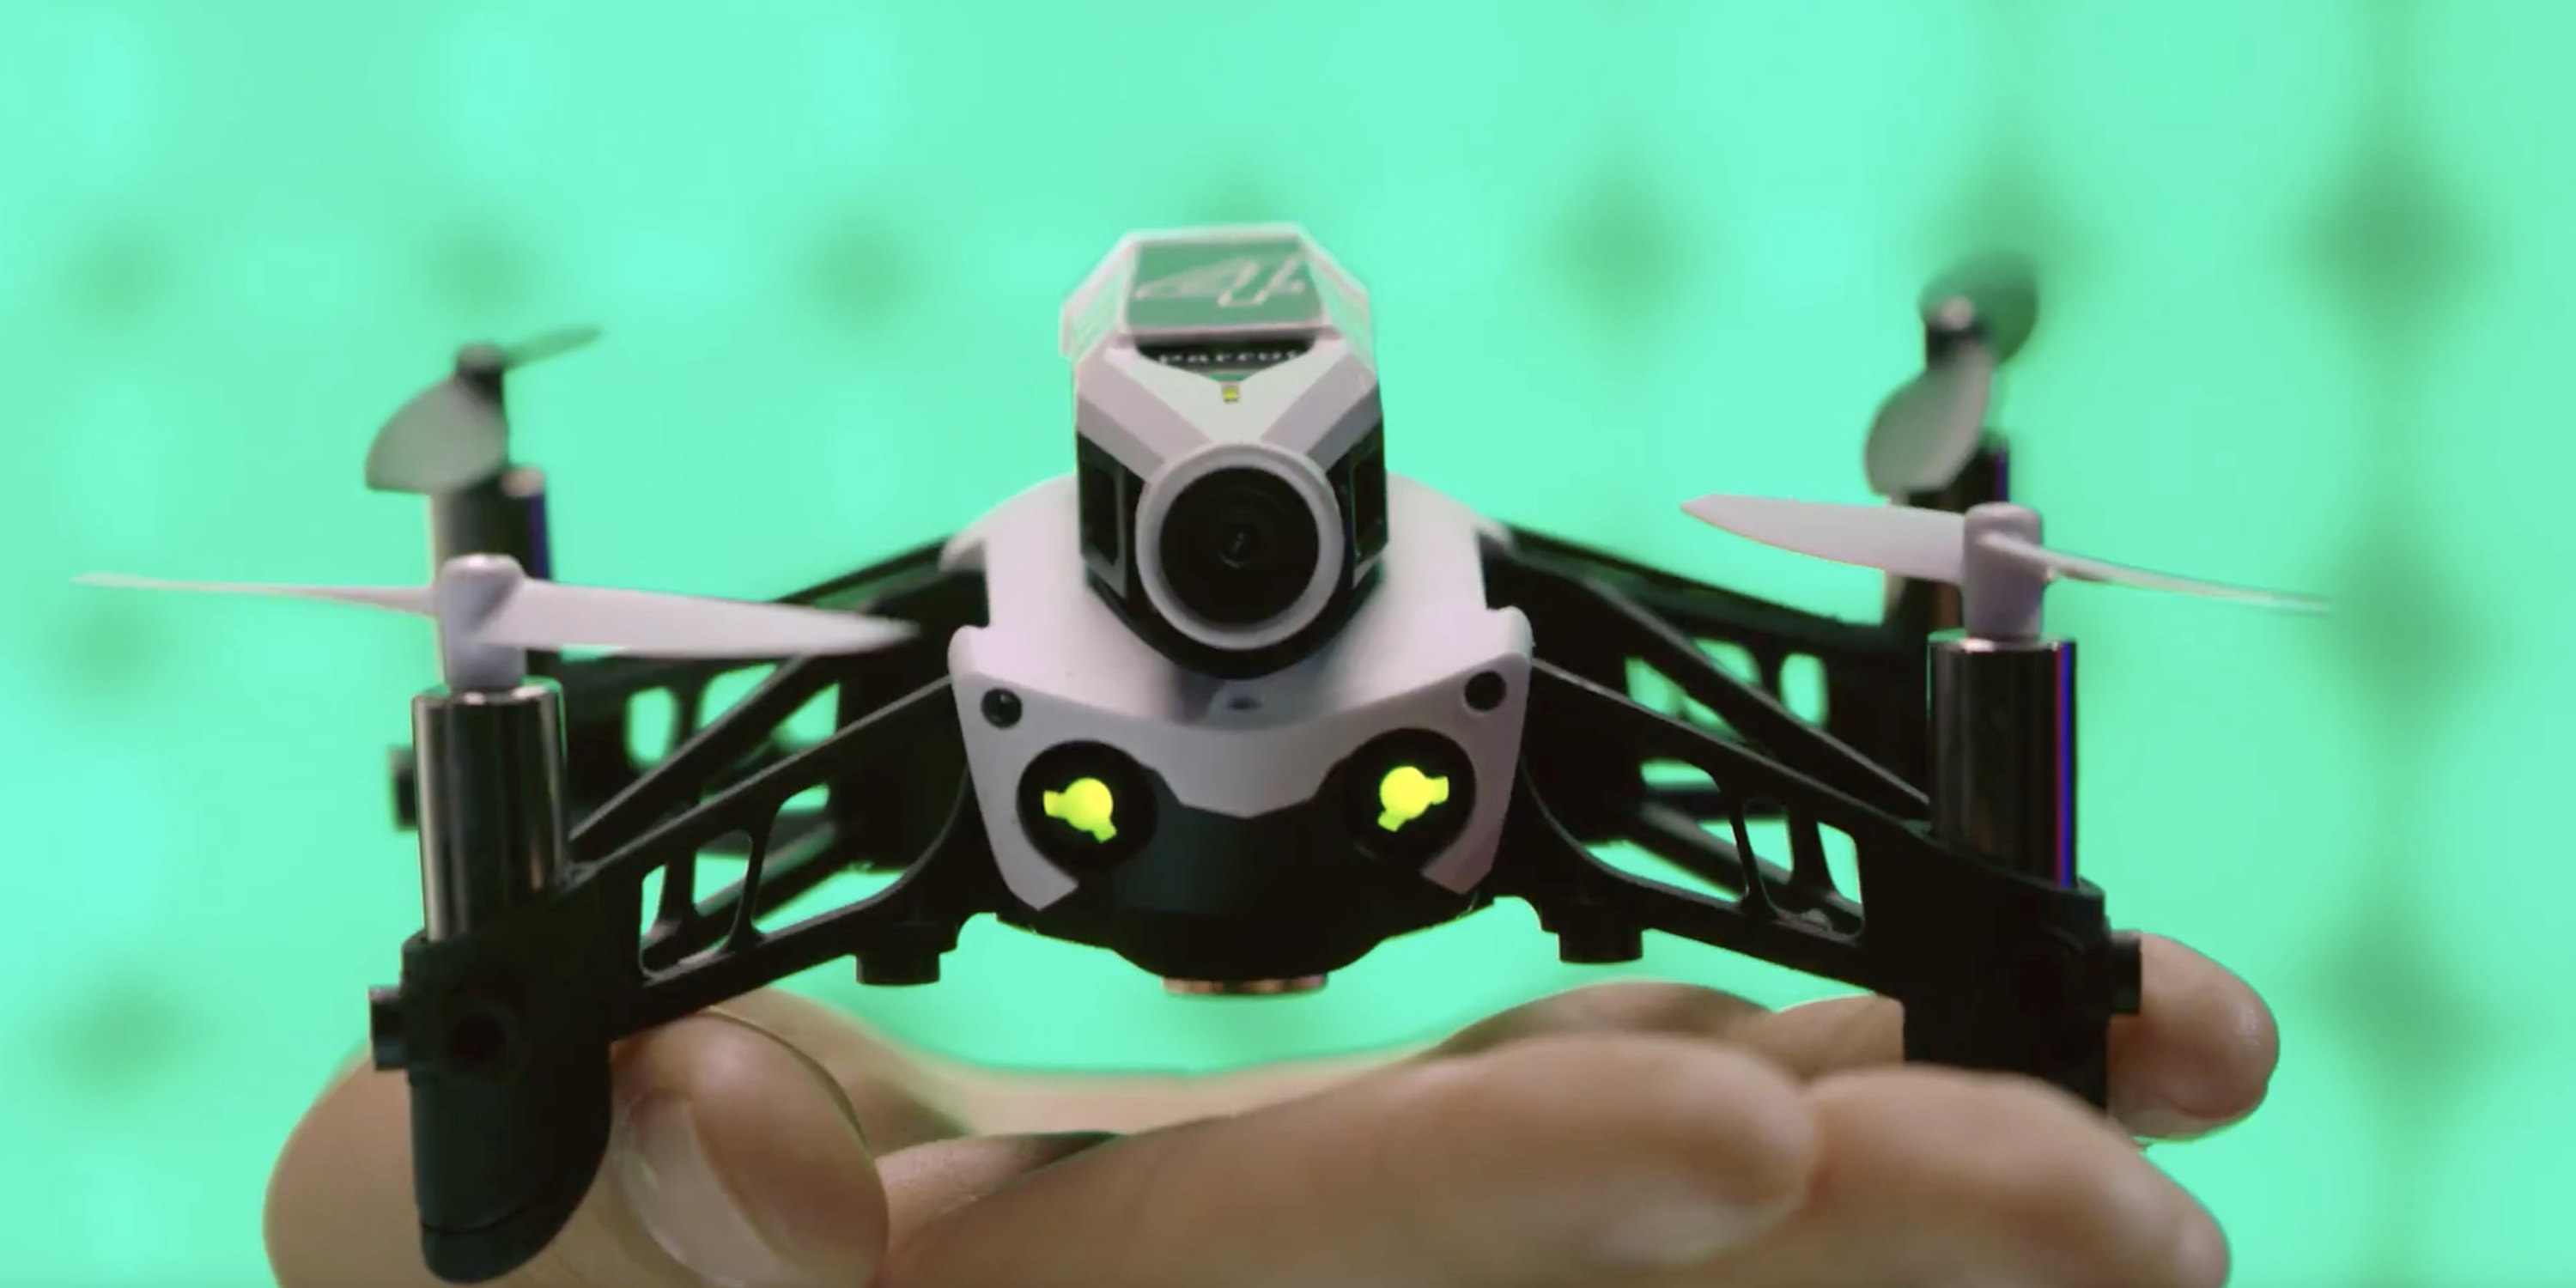 Front view with Miniture HD camera - Parrot Mambo FPV Ultra-Light agile and easy to pilot minidrone.003